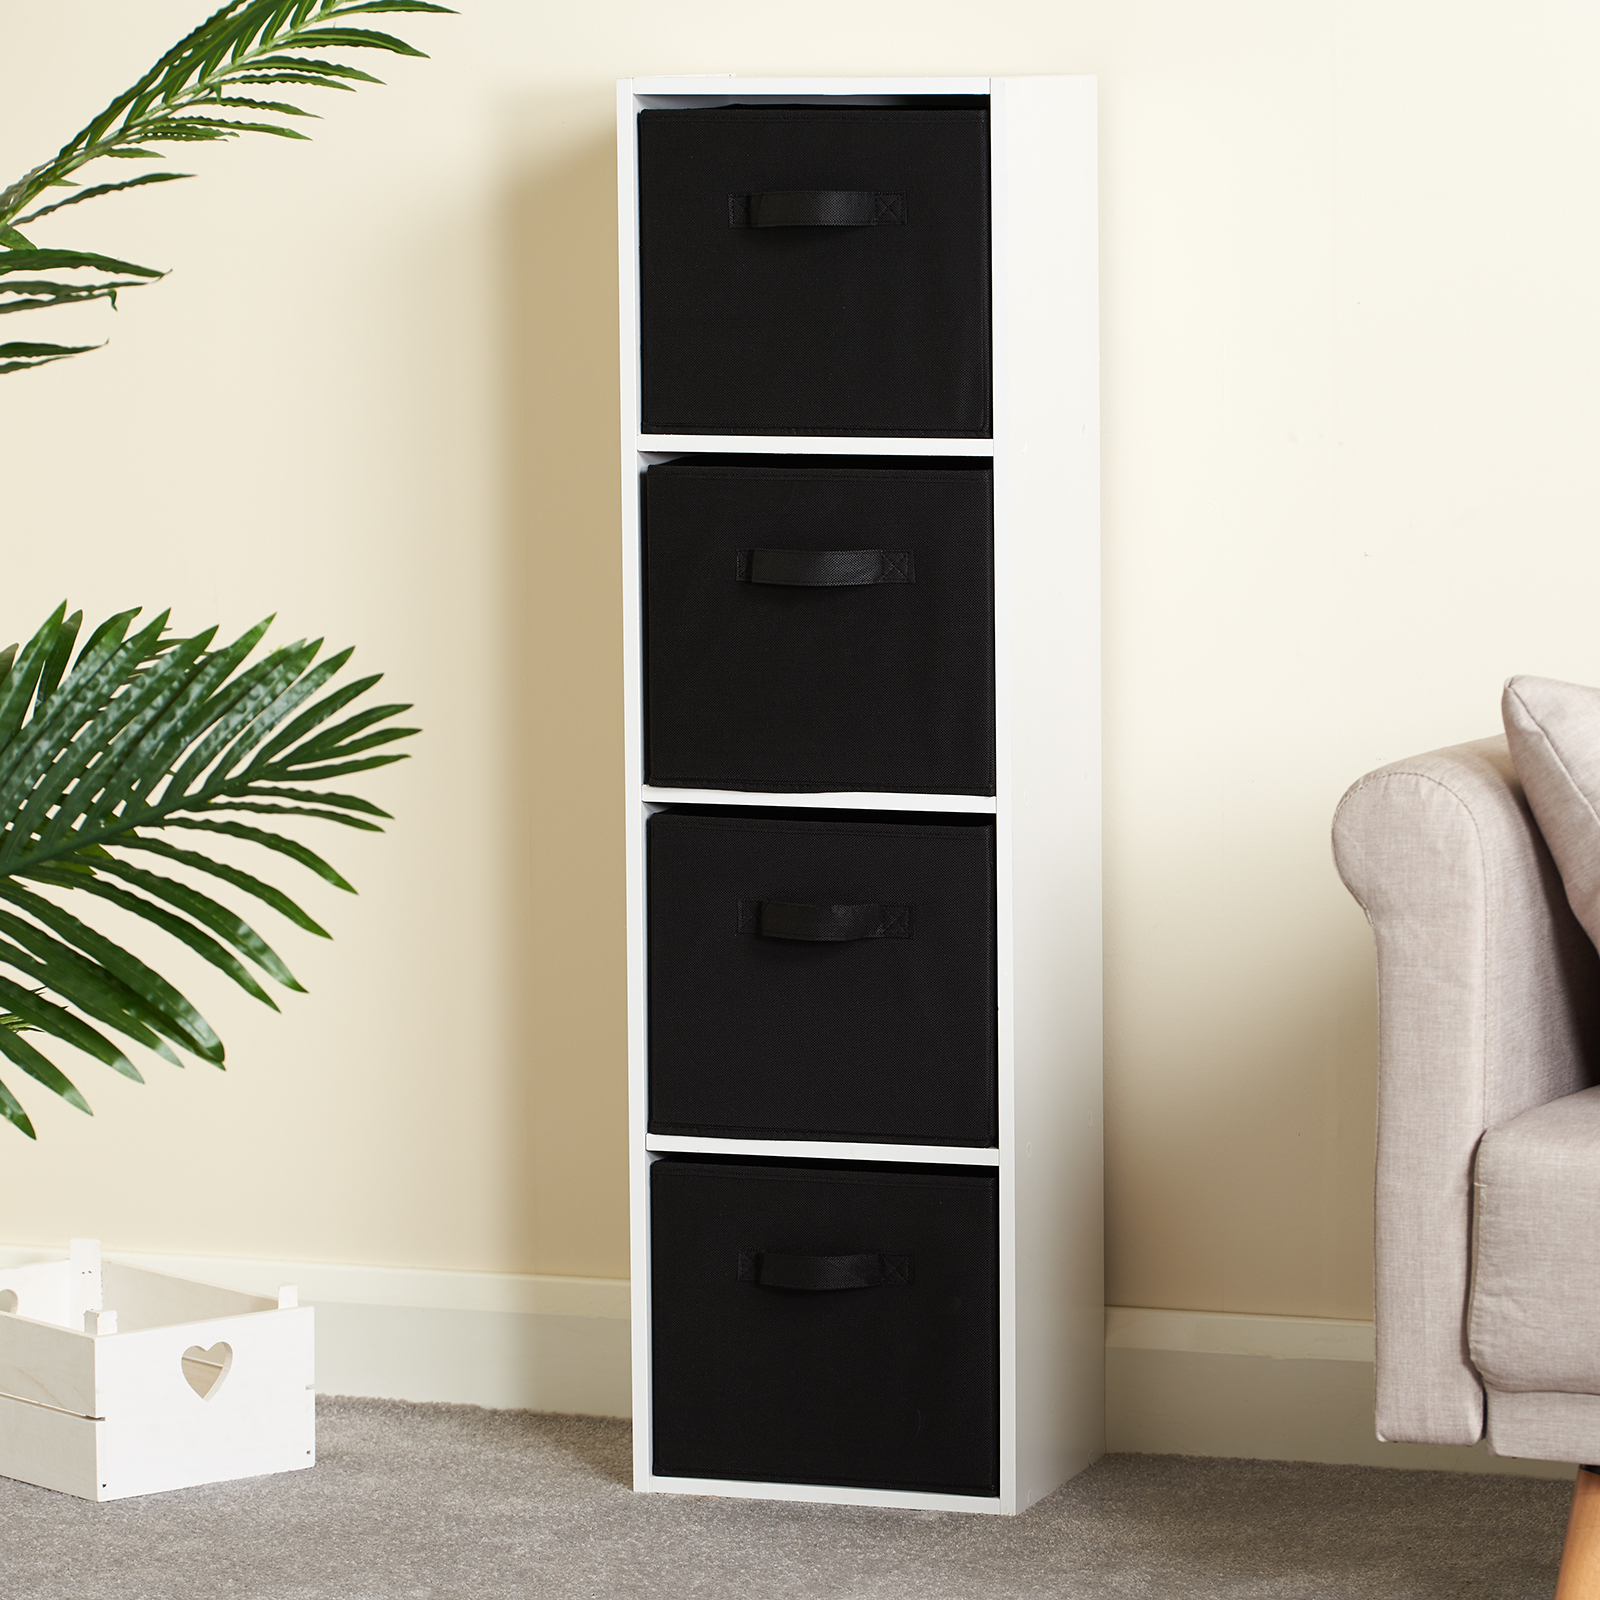 Hartleys-4-Tier-White-Bookcase-Wooden-Display-Shelving-Unit-amp-Fabric-Storage-Box thumbnail 6